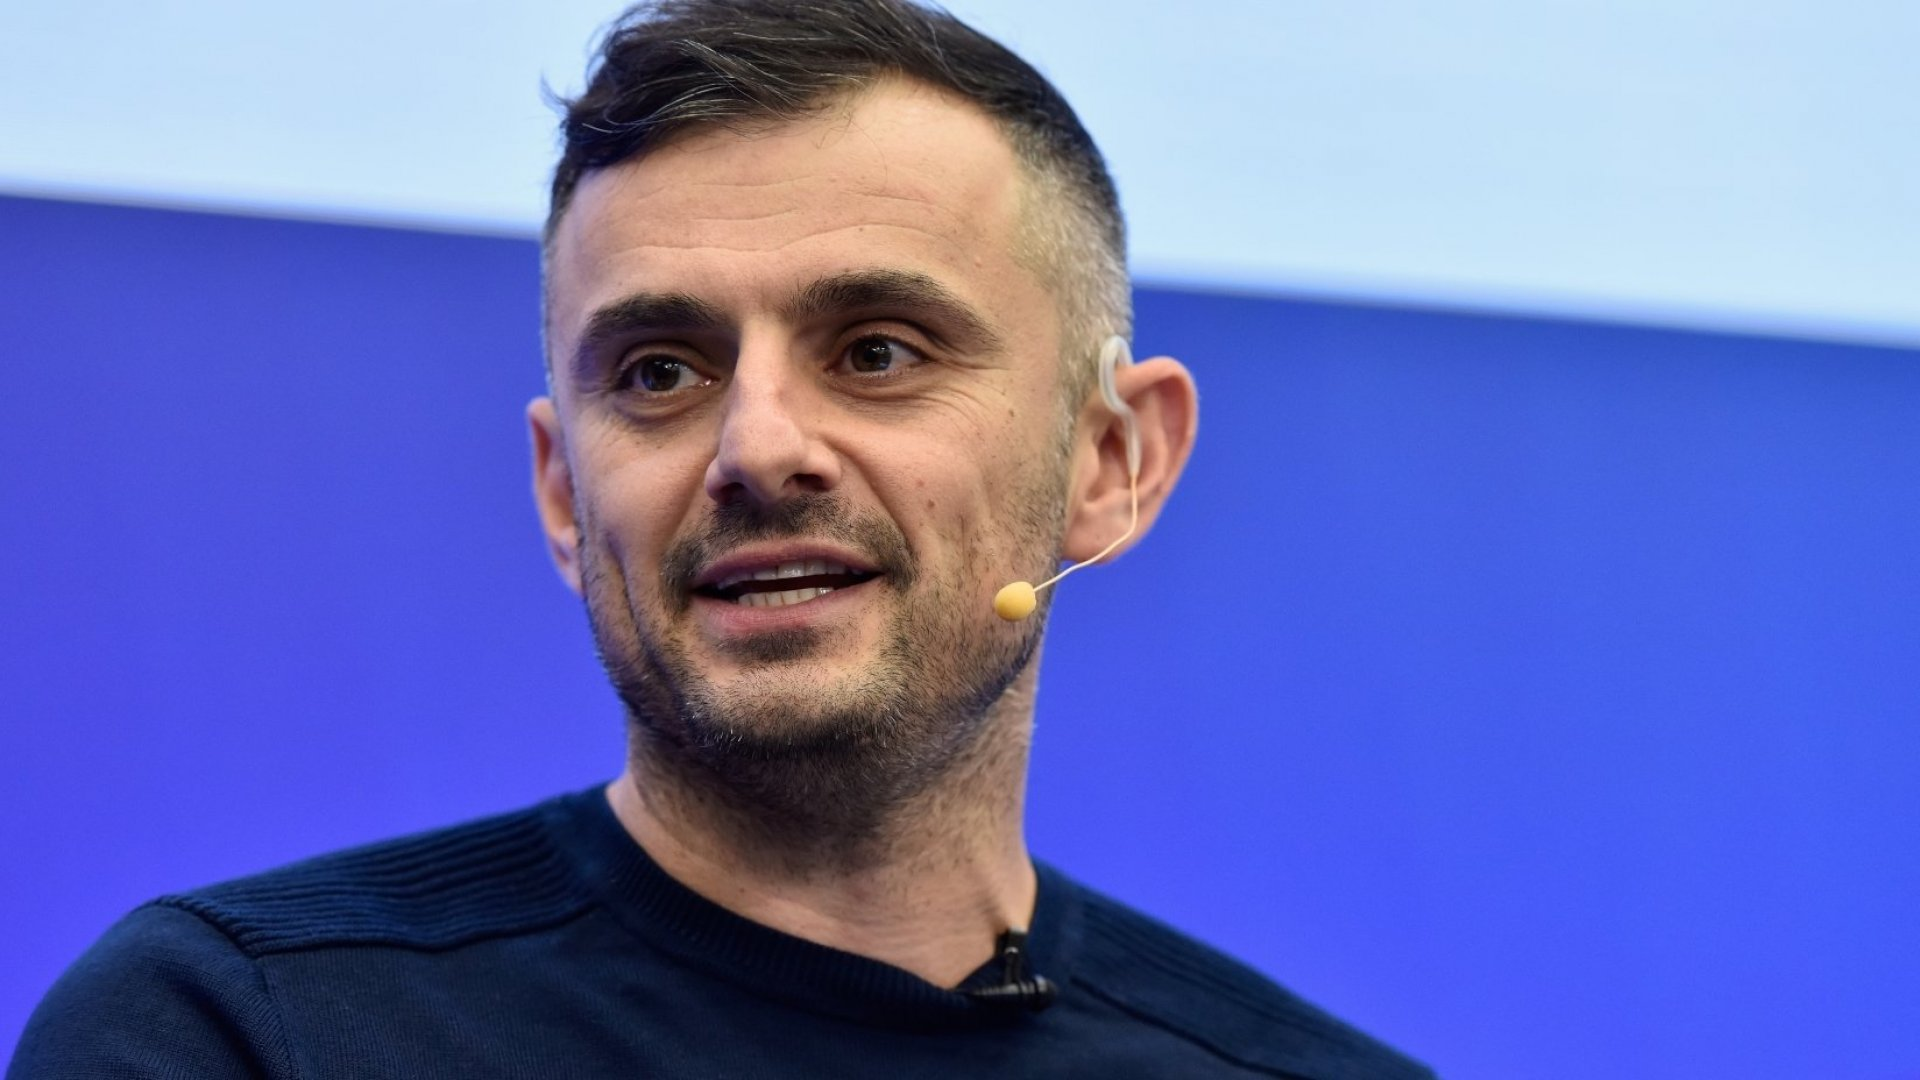 How to Become Internet Famous, According to Gary Vaynerchuk